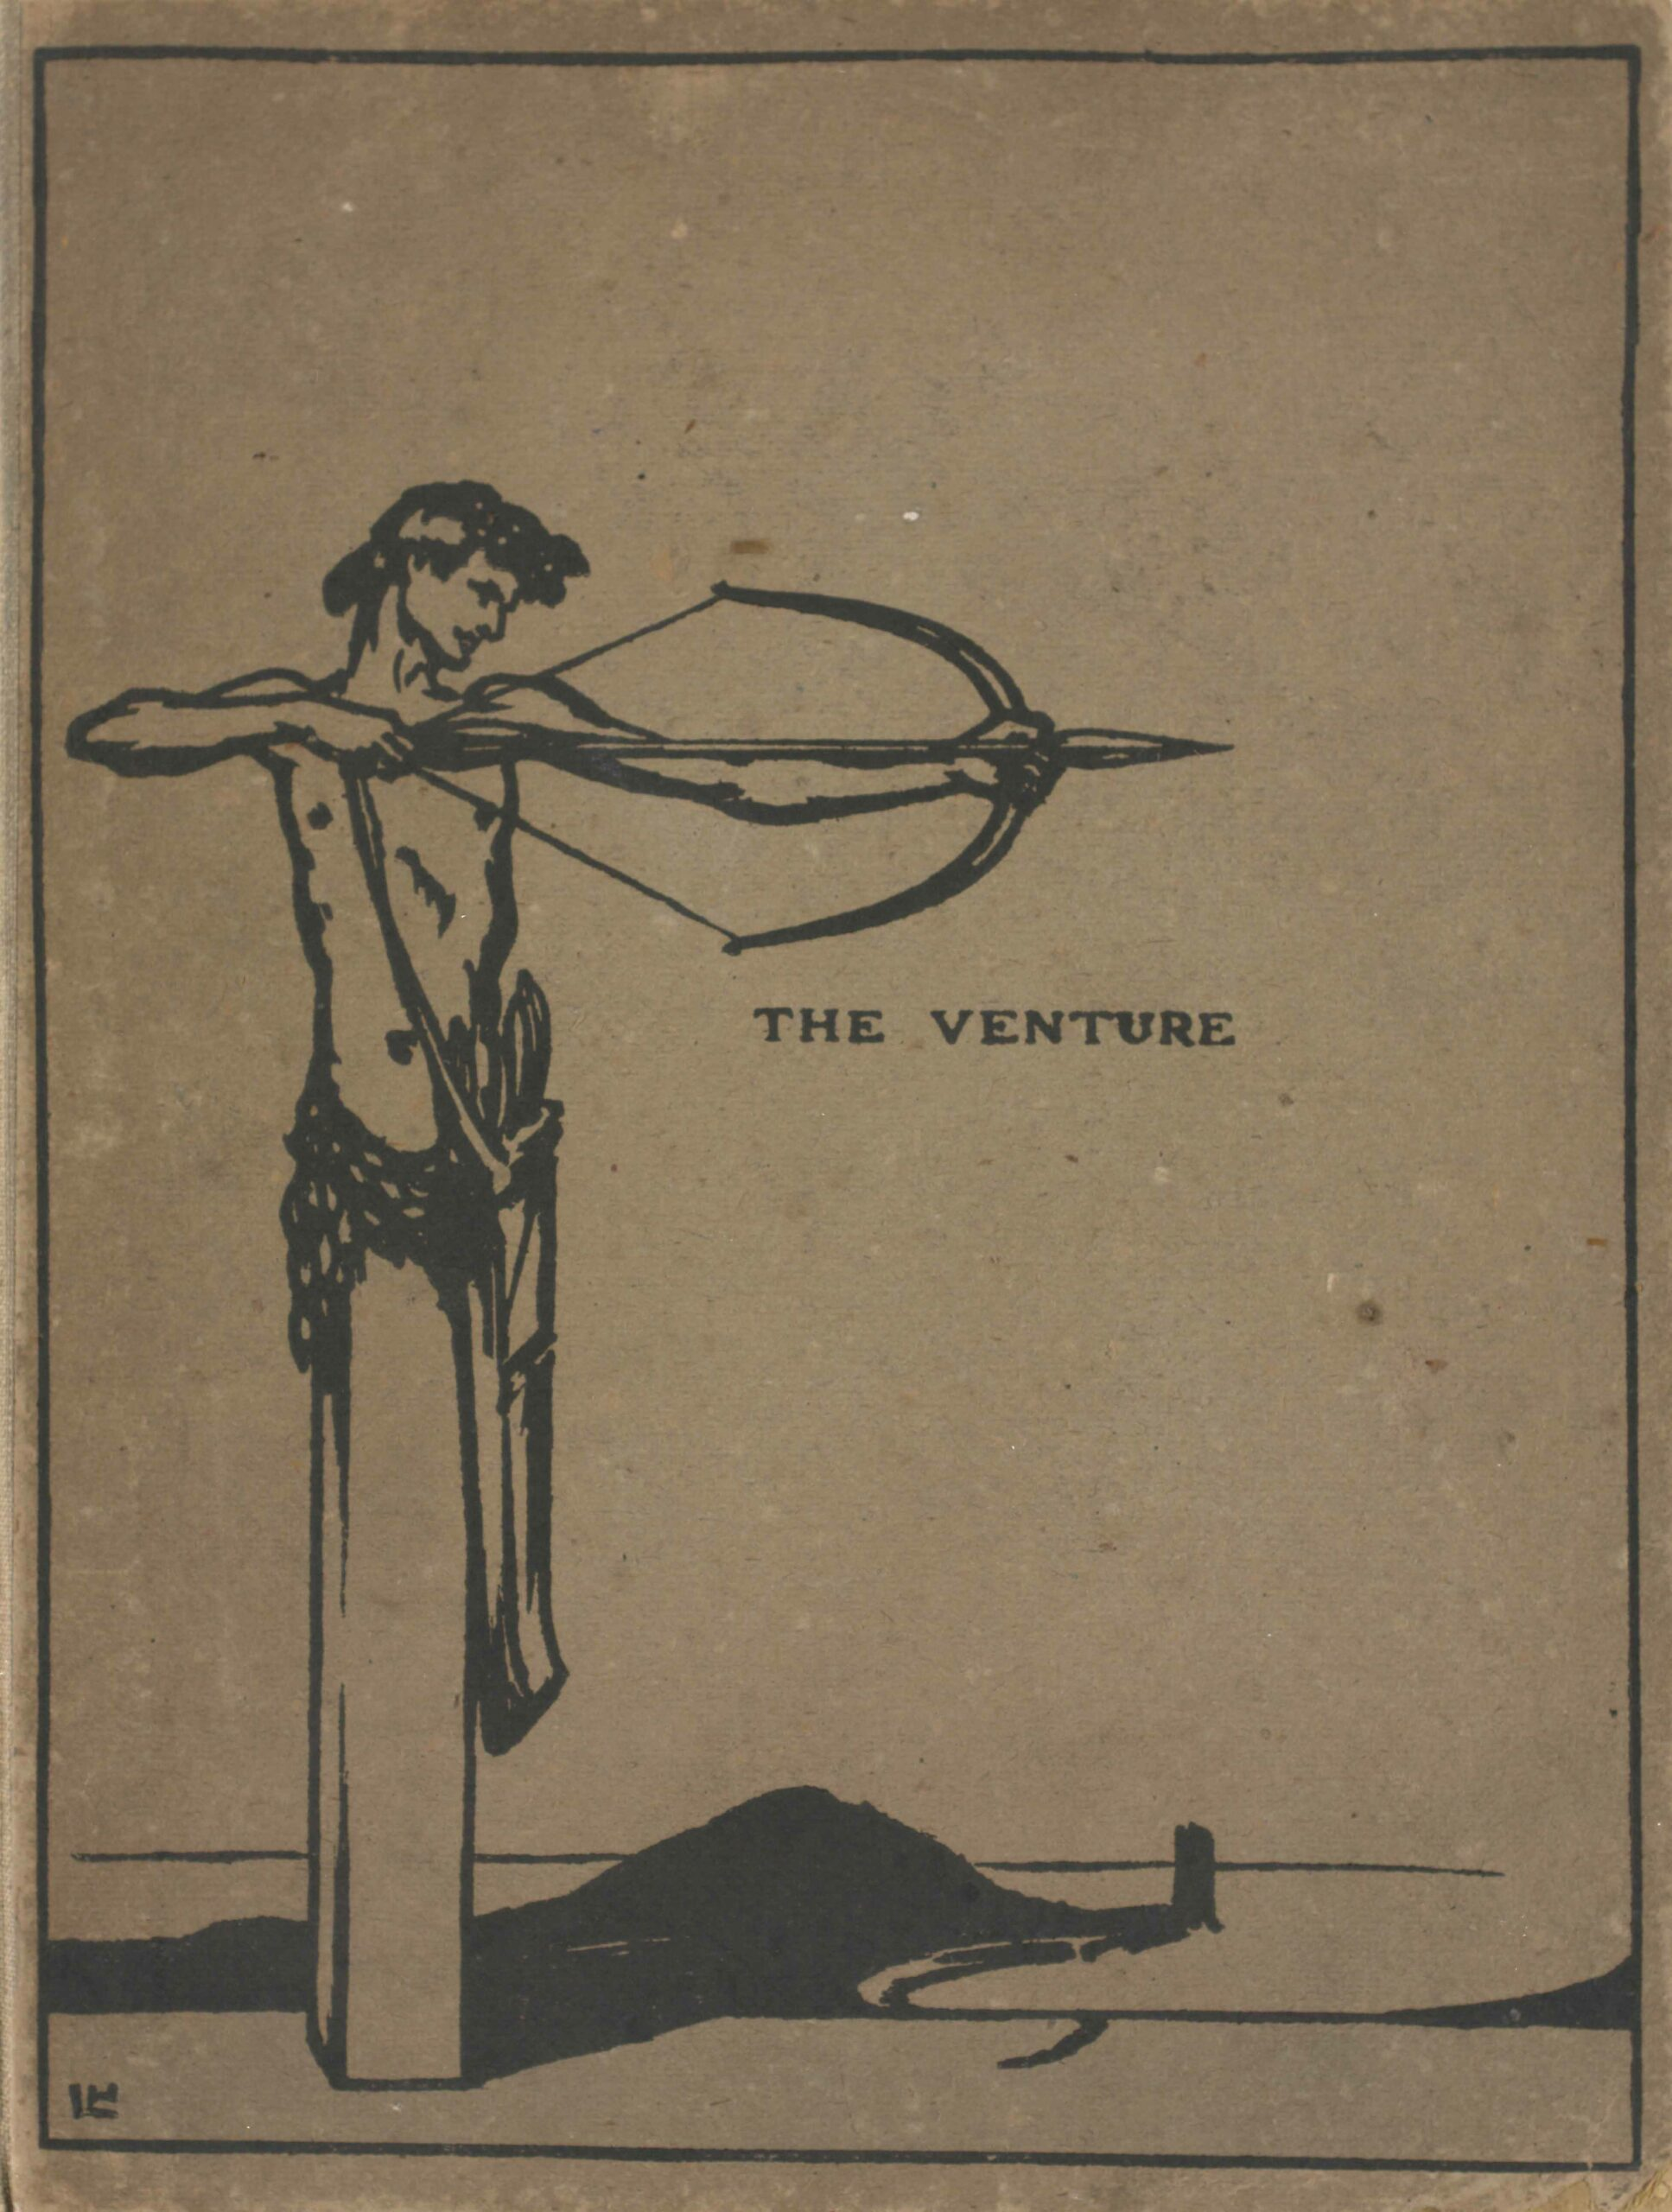 """The image is in portrait orientation and positioned on the left to fit the length of the cover. The image is printed in black on brown boards. Atop a rectangular column, the upper body of a man with short, dark hair is positioned upright and facing forward (such a column is called a herm). The man's head is turned to the right and slightly downwards. He is drawing an arrow; he is using his left arm to balance the bow and his right hand to pull the arrow back. The man is wearing a small knotted fabric on his waistline and a strap across his chest is attached to a bag or quiver with arrows. In the background there is a dark coastline receding towards the left side of the image, a dock at its end, and the outline of a large hill. The man's shadow is on the right ground beneath him. """"The Venture"""" is transcribed in small capital letters at the center of the image, just below the figure's bow."""